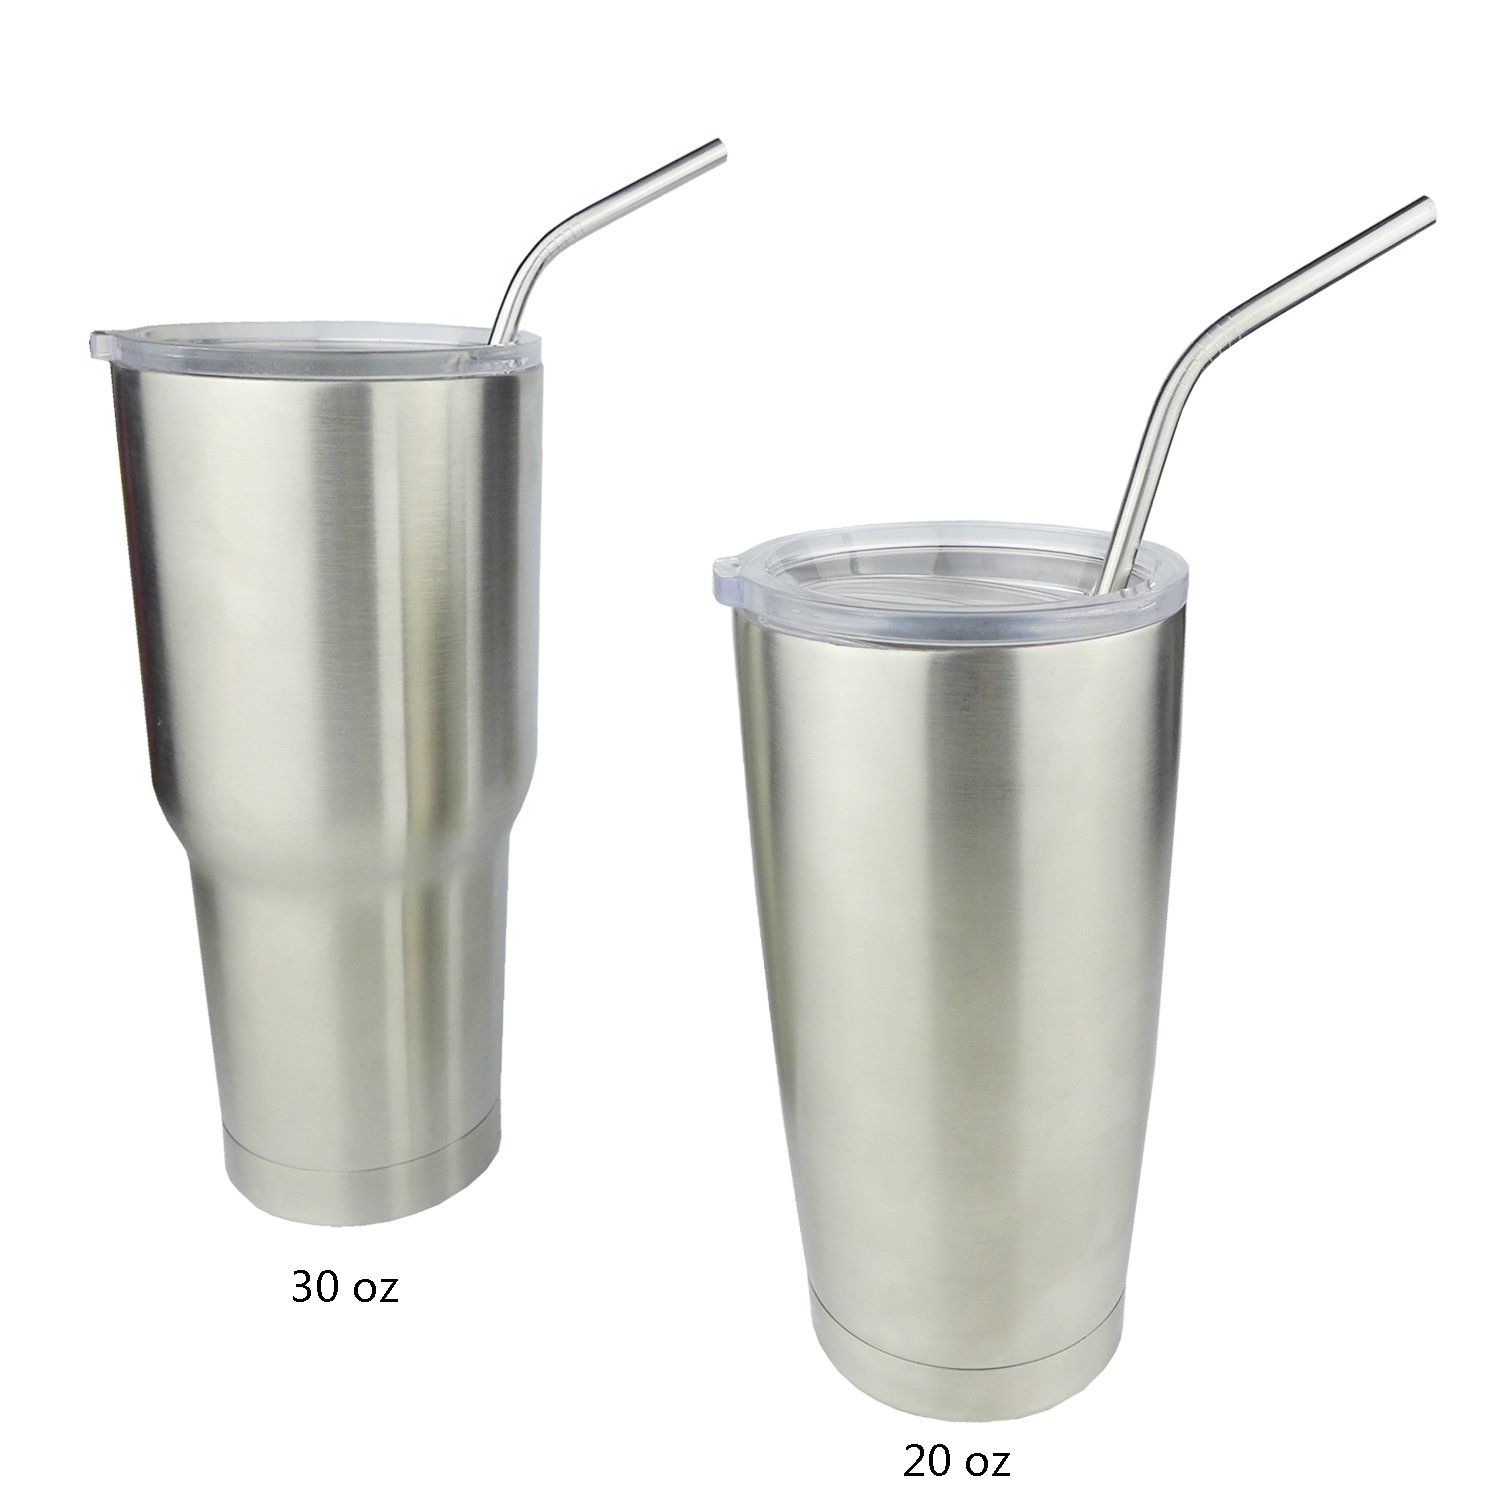 5 Extra Long 18/8 Stainless Steel Drinking Straws Fits 20 Oz & 30 Oz Yeti Rambler Tumbler Cups By Ehme Brand,free Cleaning Brushed Included (10.5